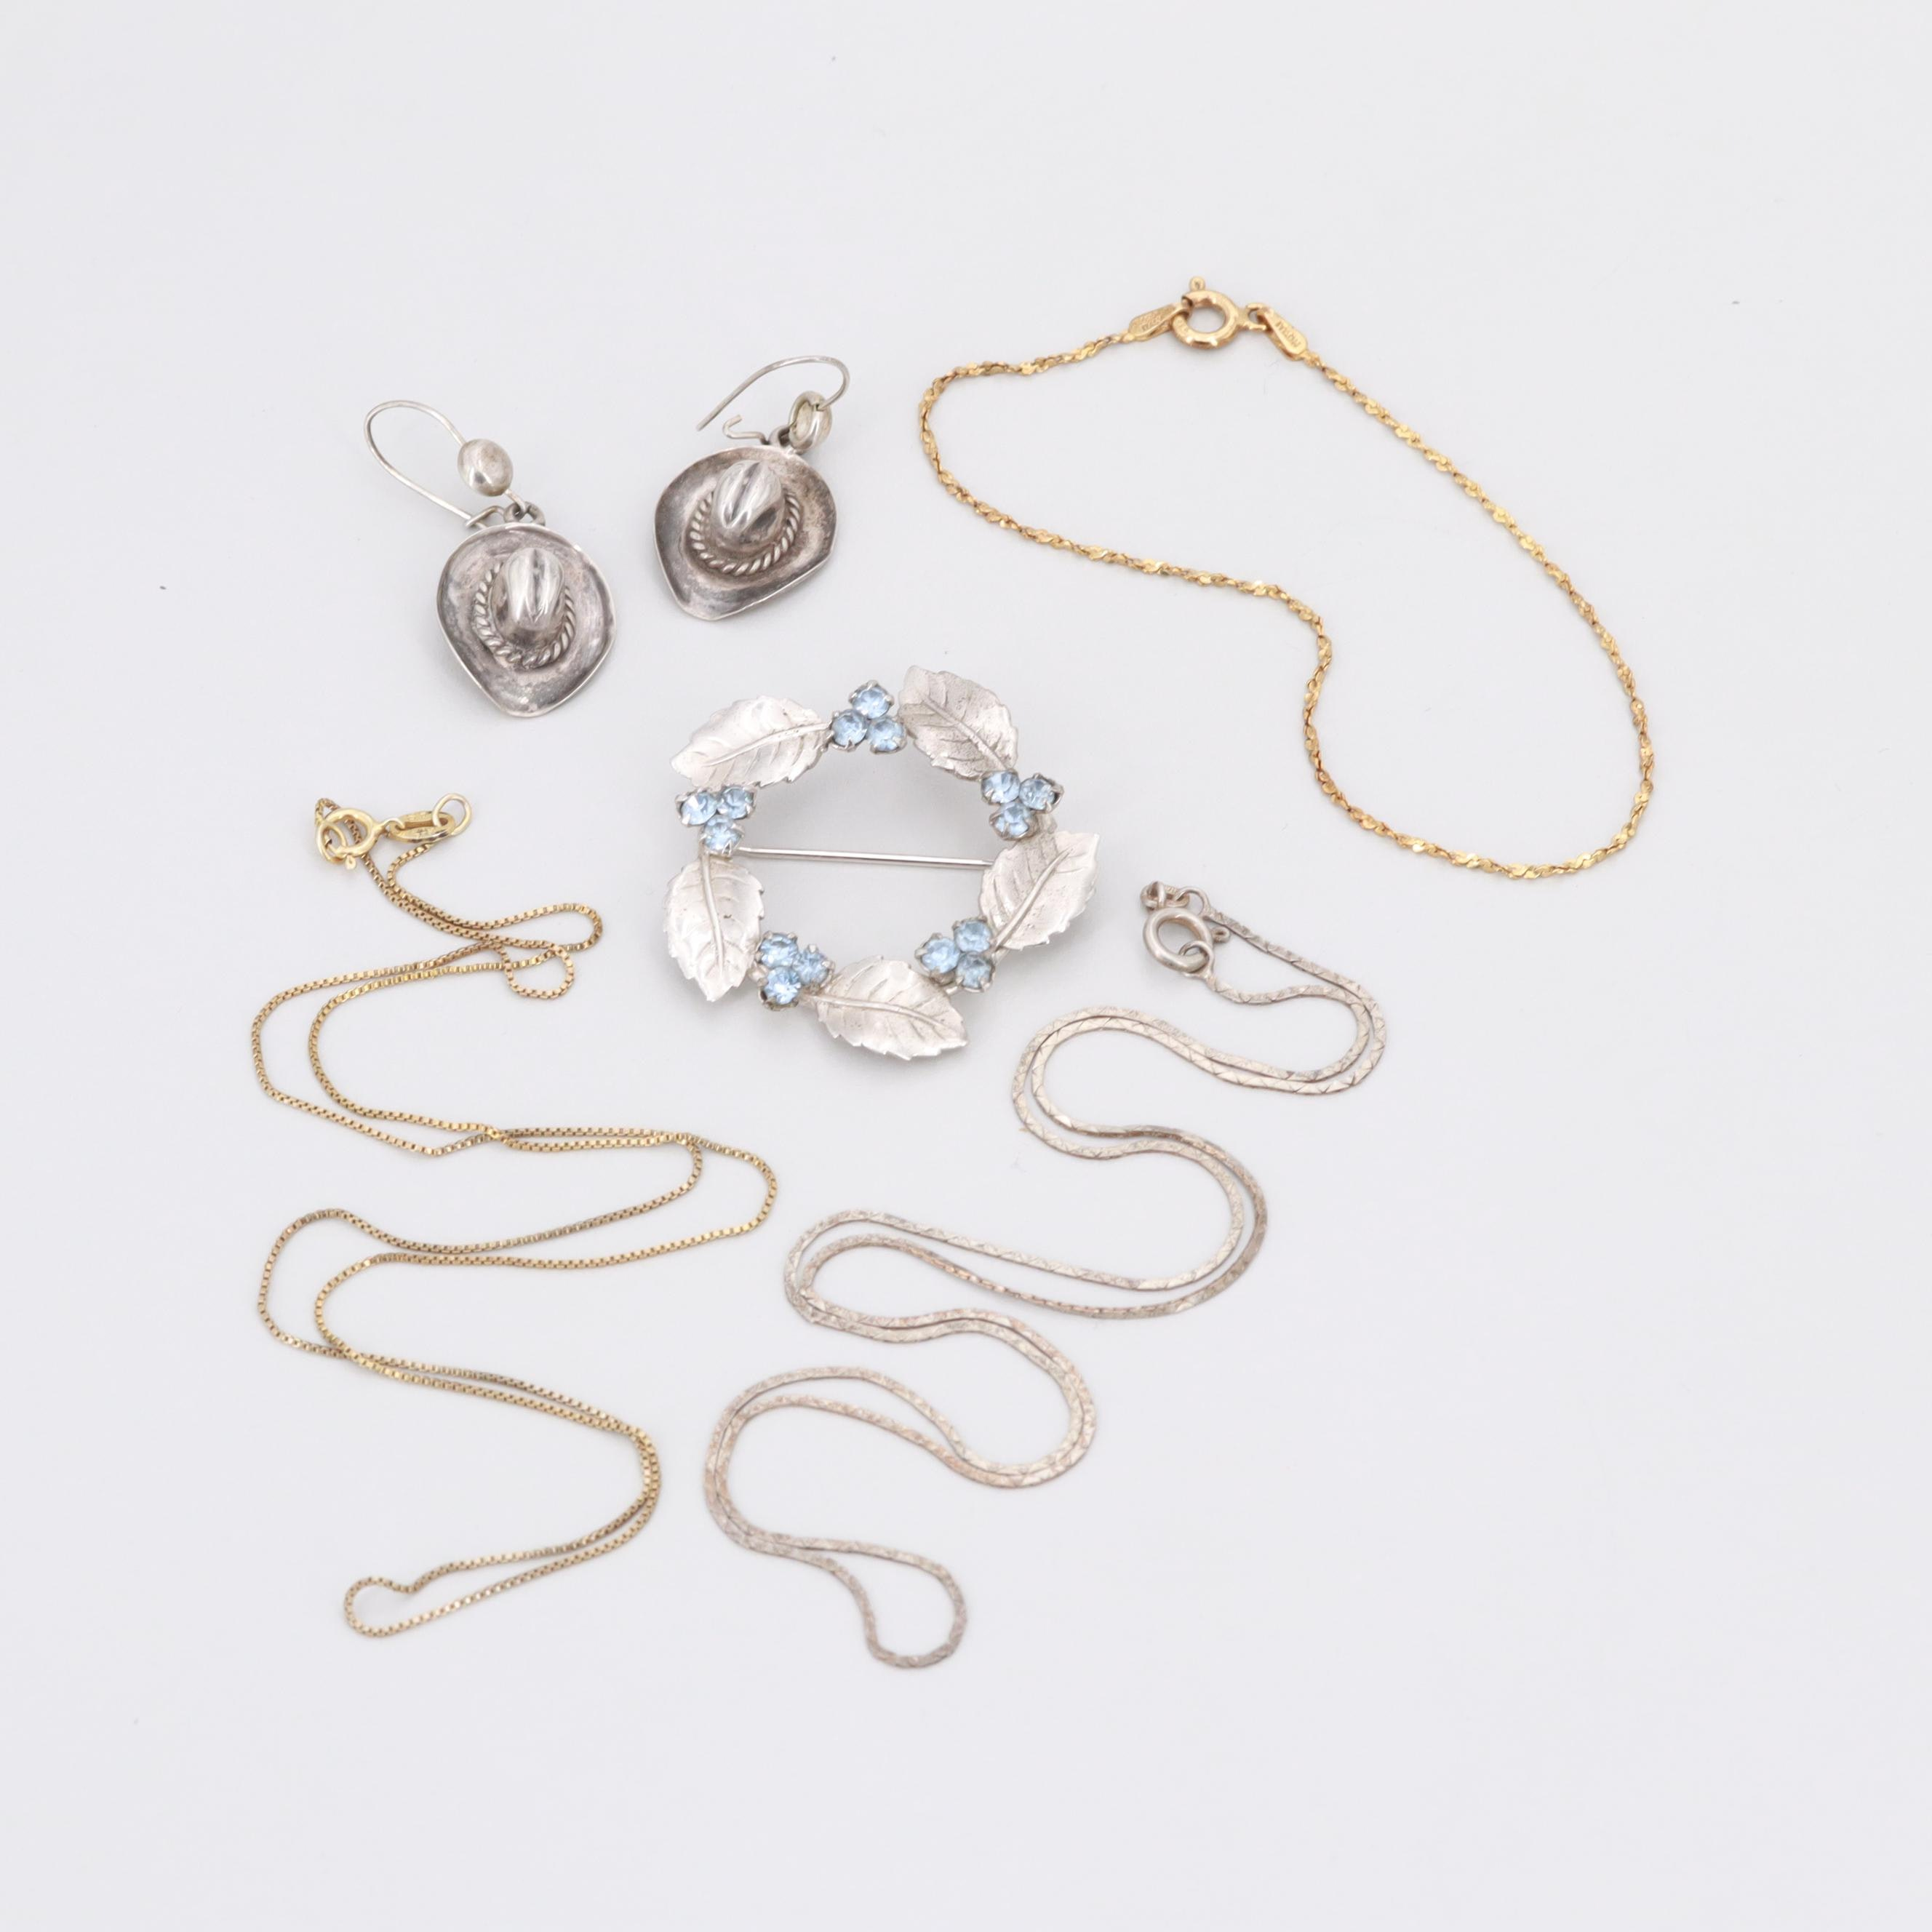 Assorted Sterling Silver and Gold Tone Glass Jewelry